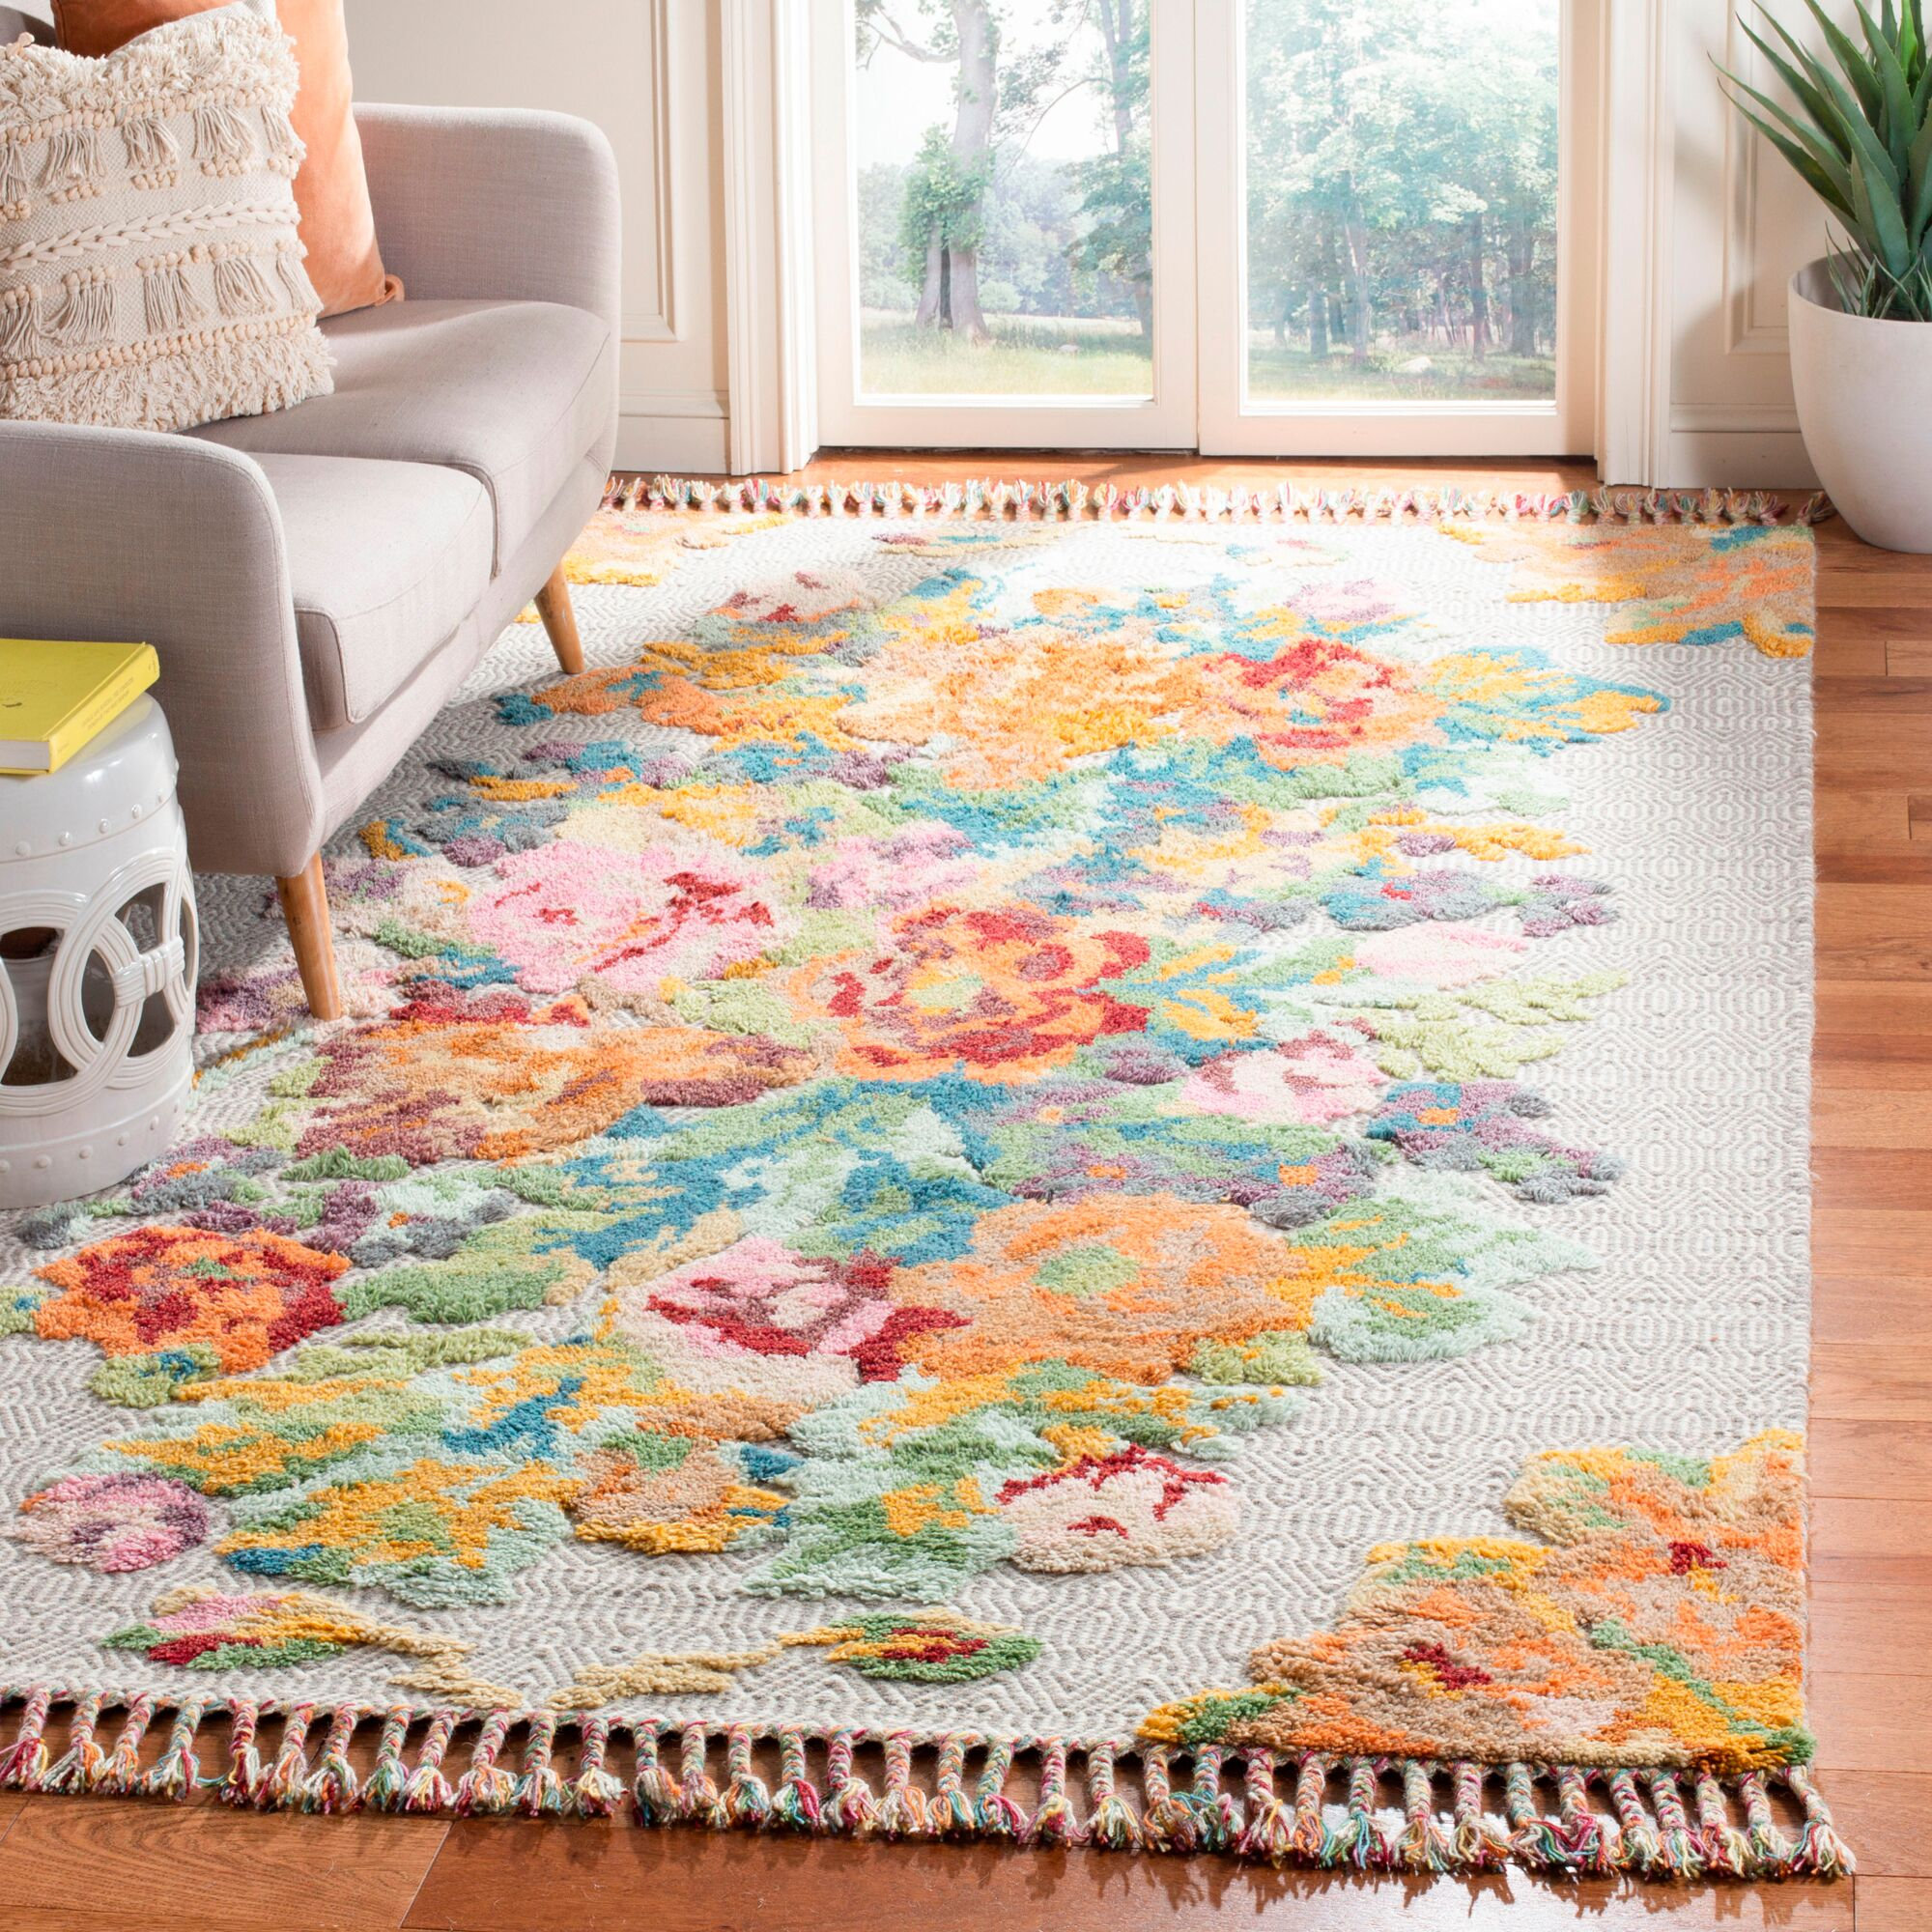 Bertha Hand Knotted Wool Orange Area Rug Rug Size: Rectangle 6' x 9'